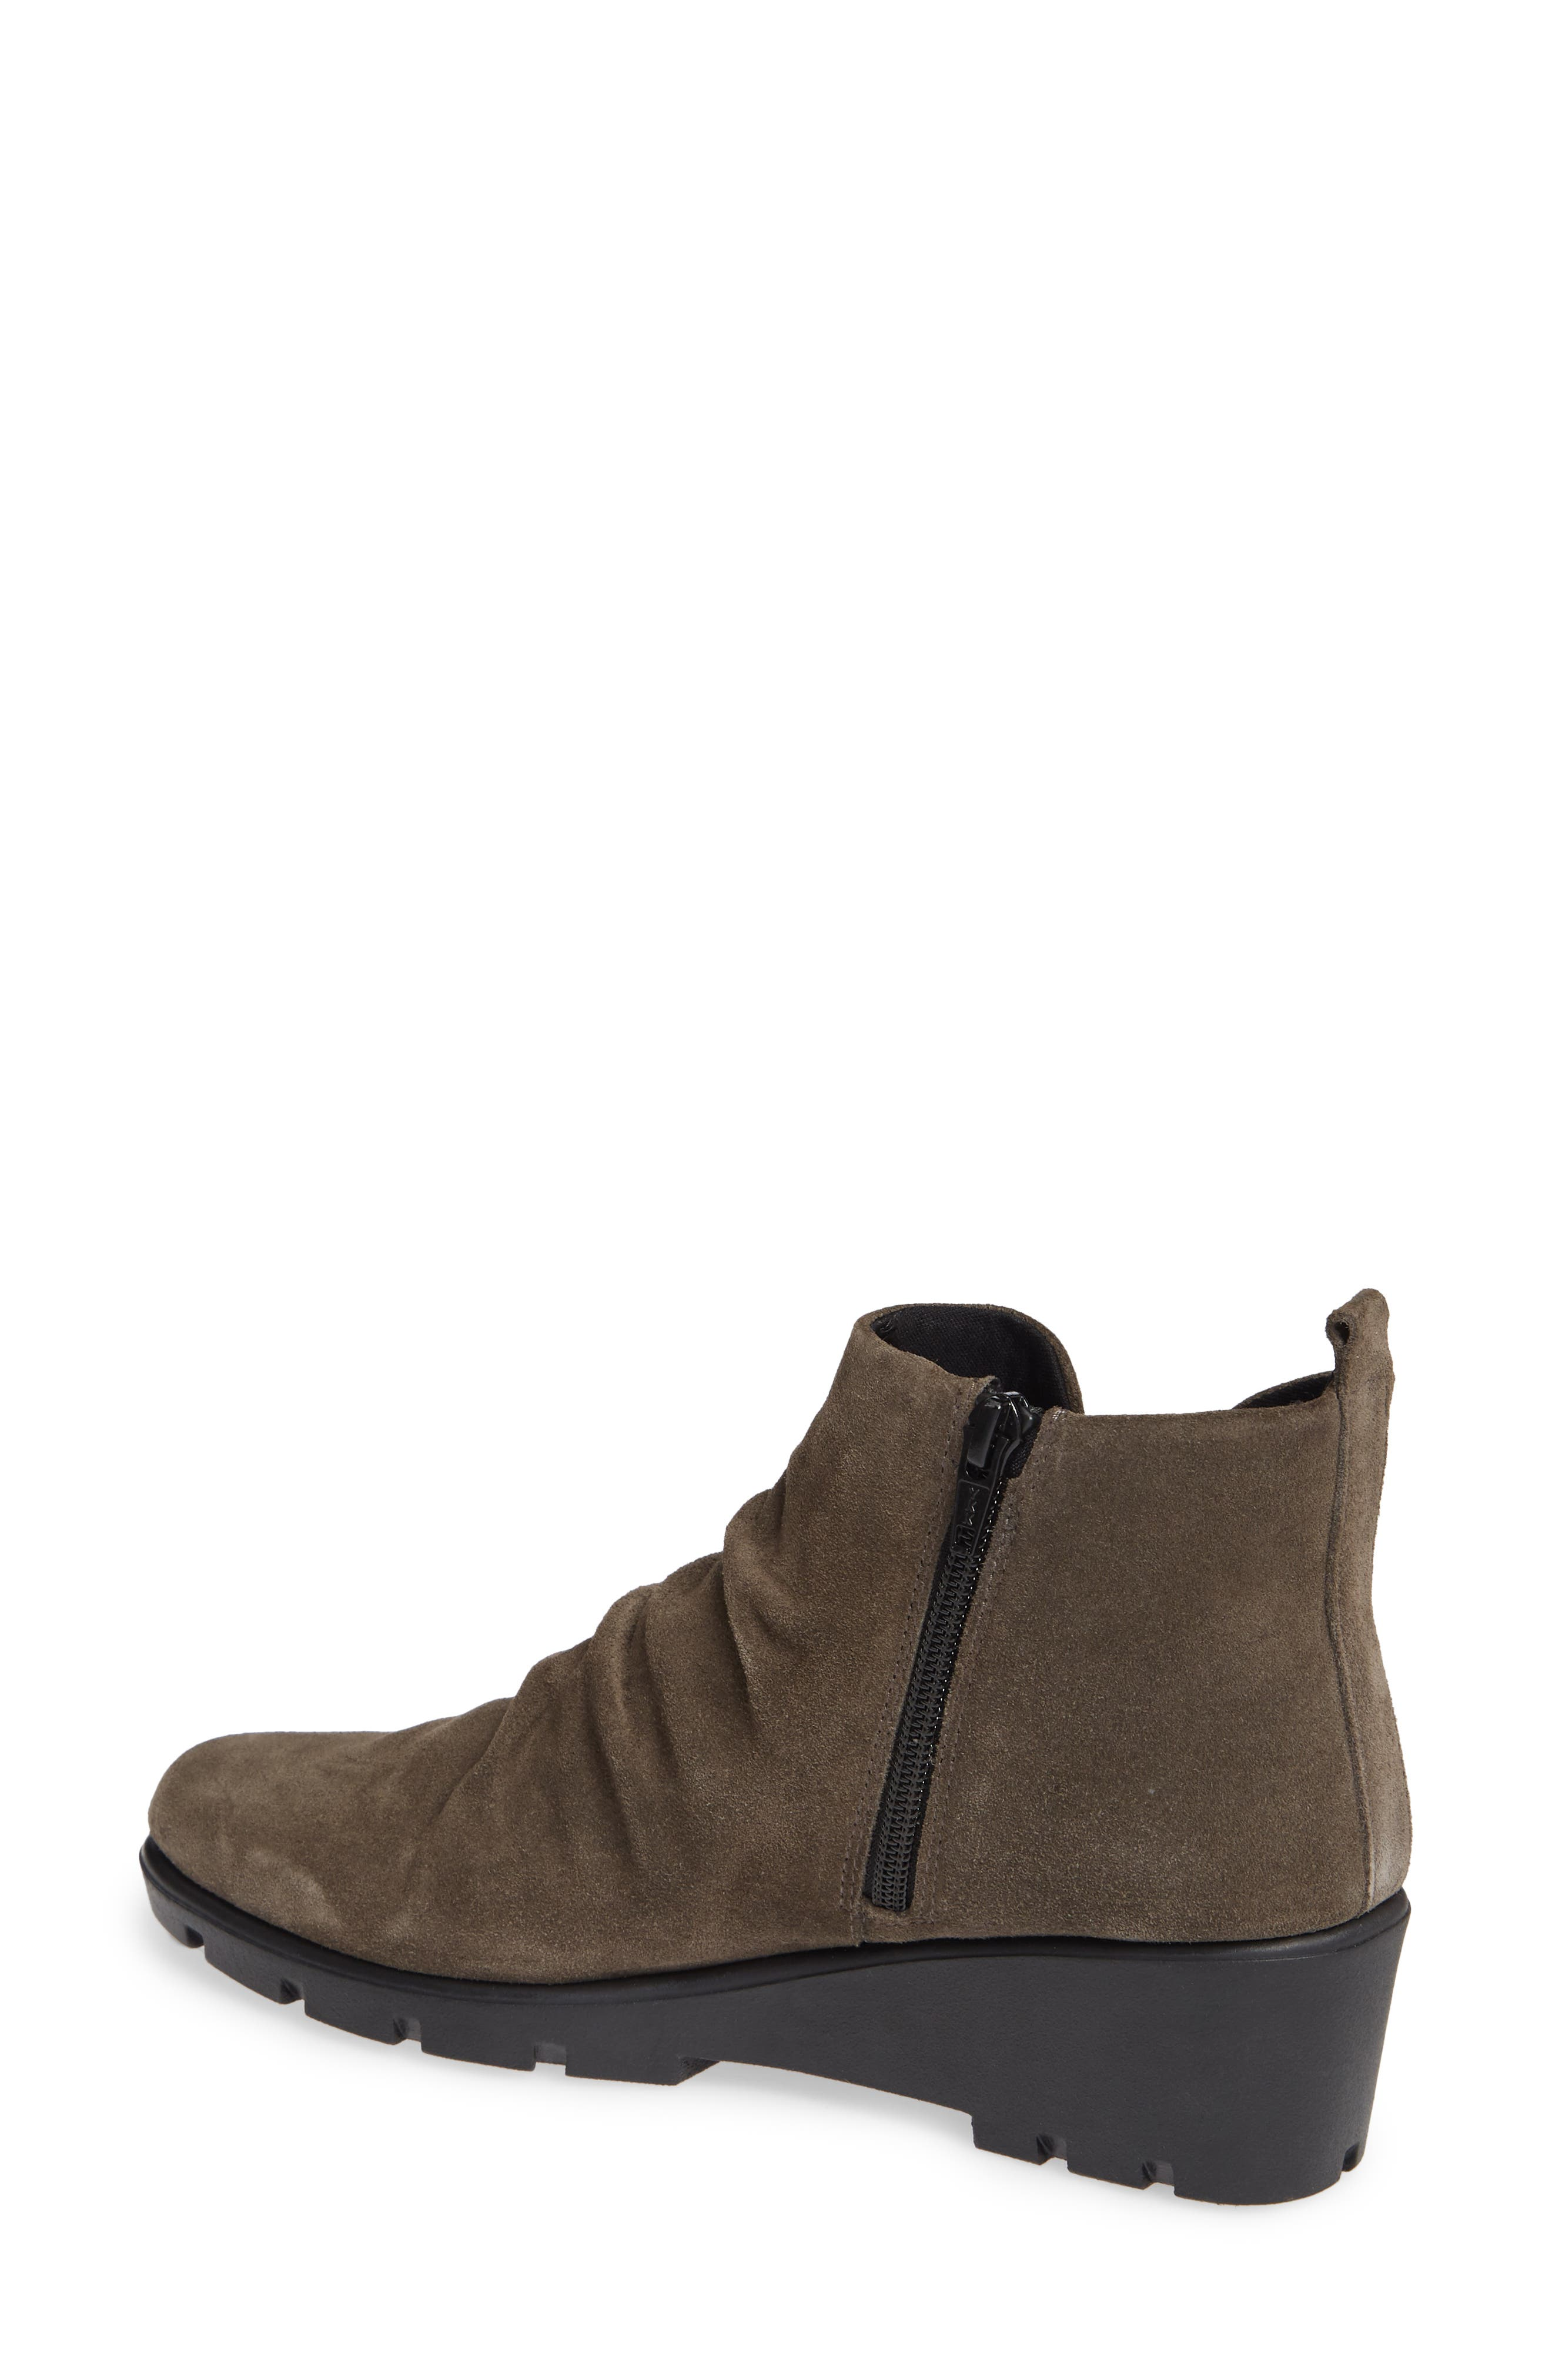 THE FLEXX, Slingshot Ankle Bootie, Alternate thumbnail 2, color, BROWN SUEDE